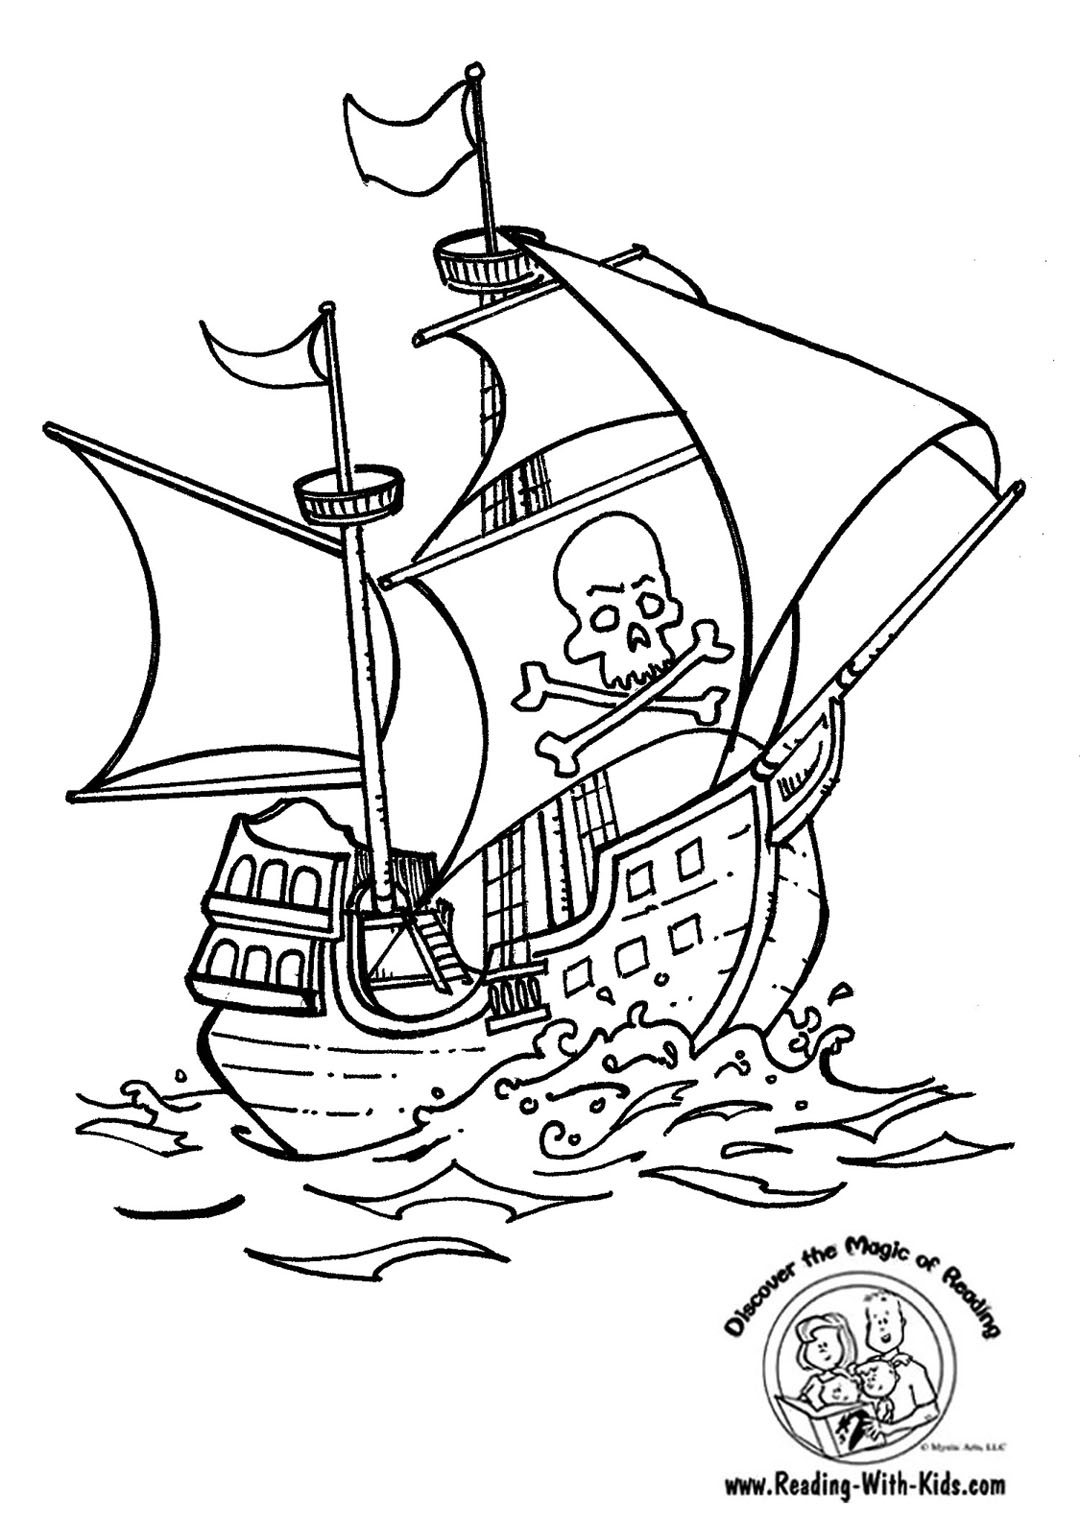 pirate coloring pages for kids printable pirate coloring pages to download and print for free pages for kids pirate printable coloring